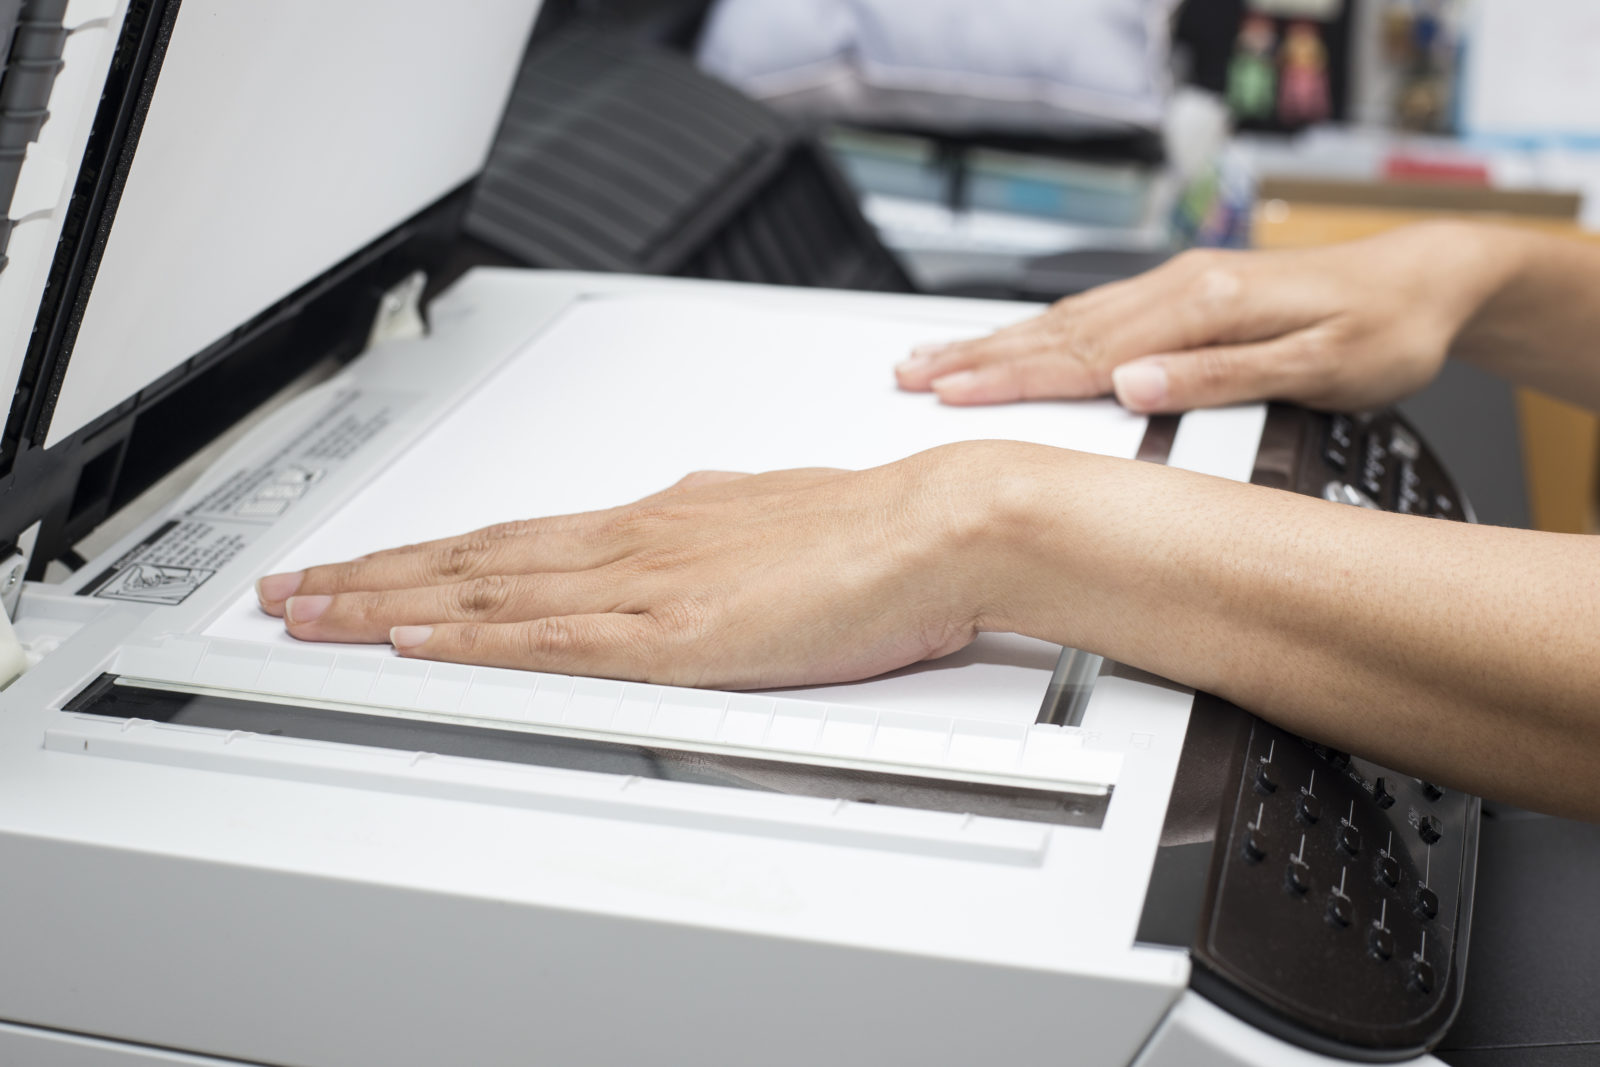 Learn about document scanning services and how they work.